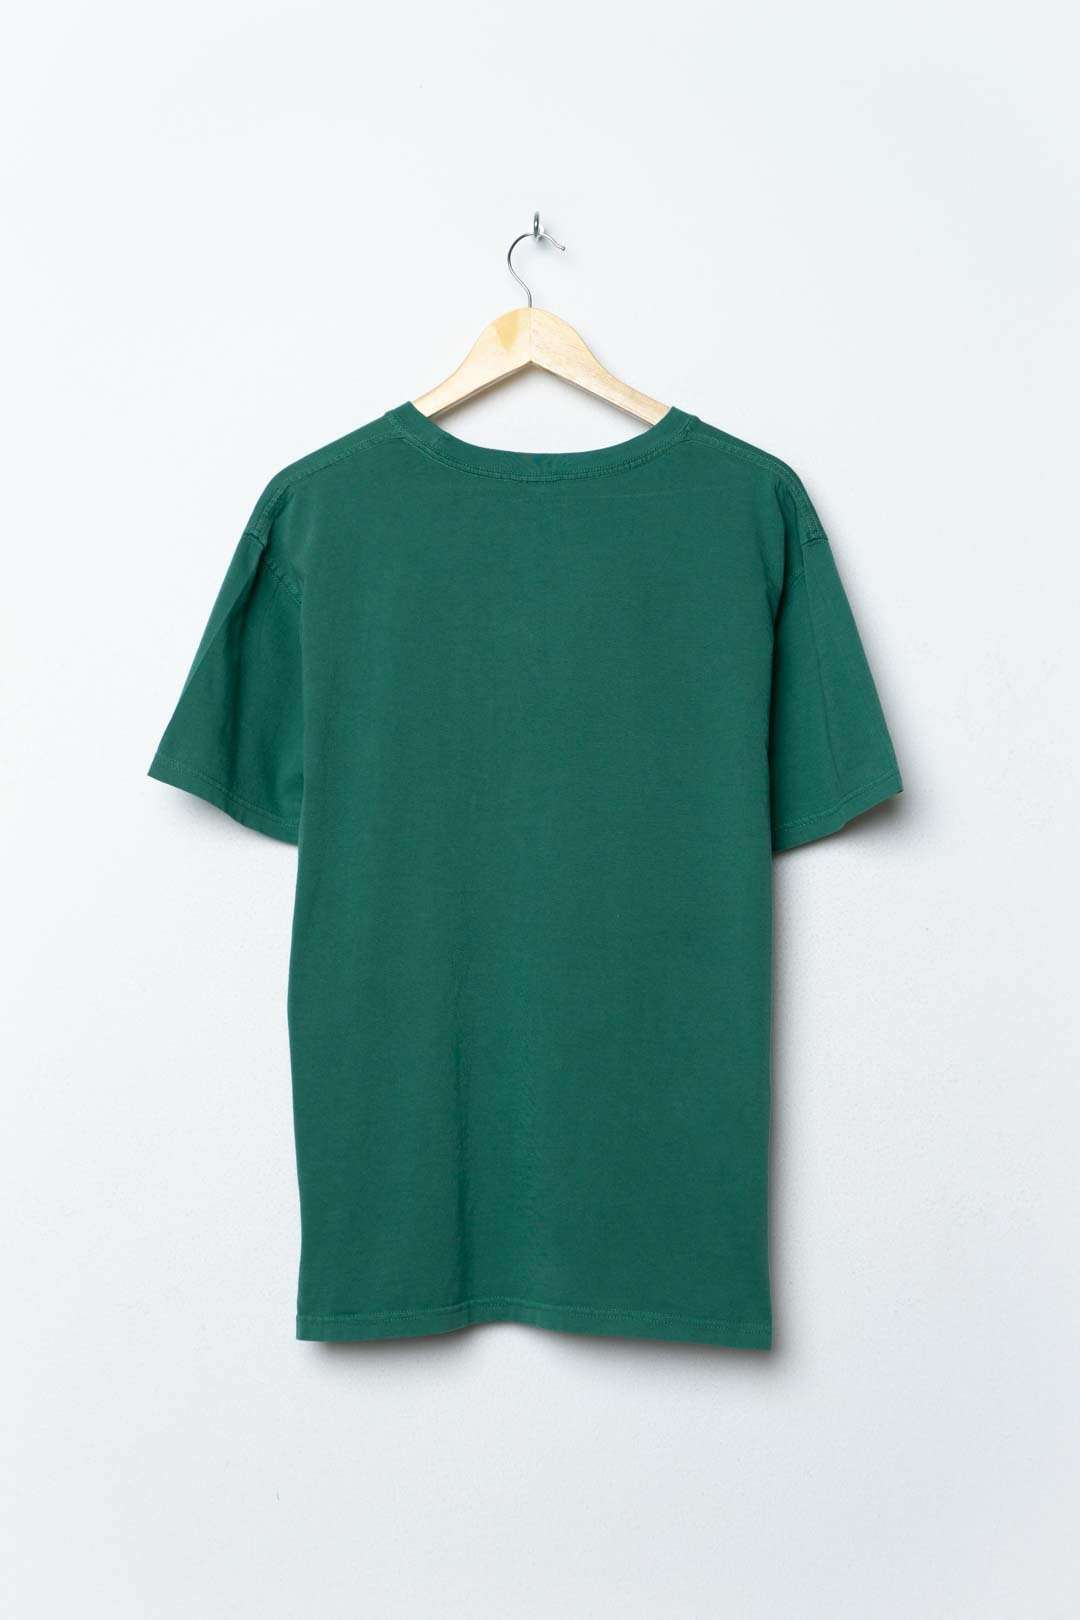 Green Plain T-Shirt L - VinoKilo.com